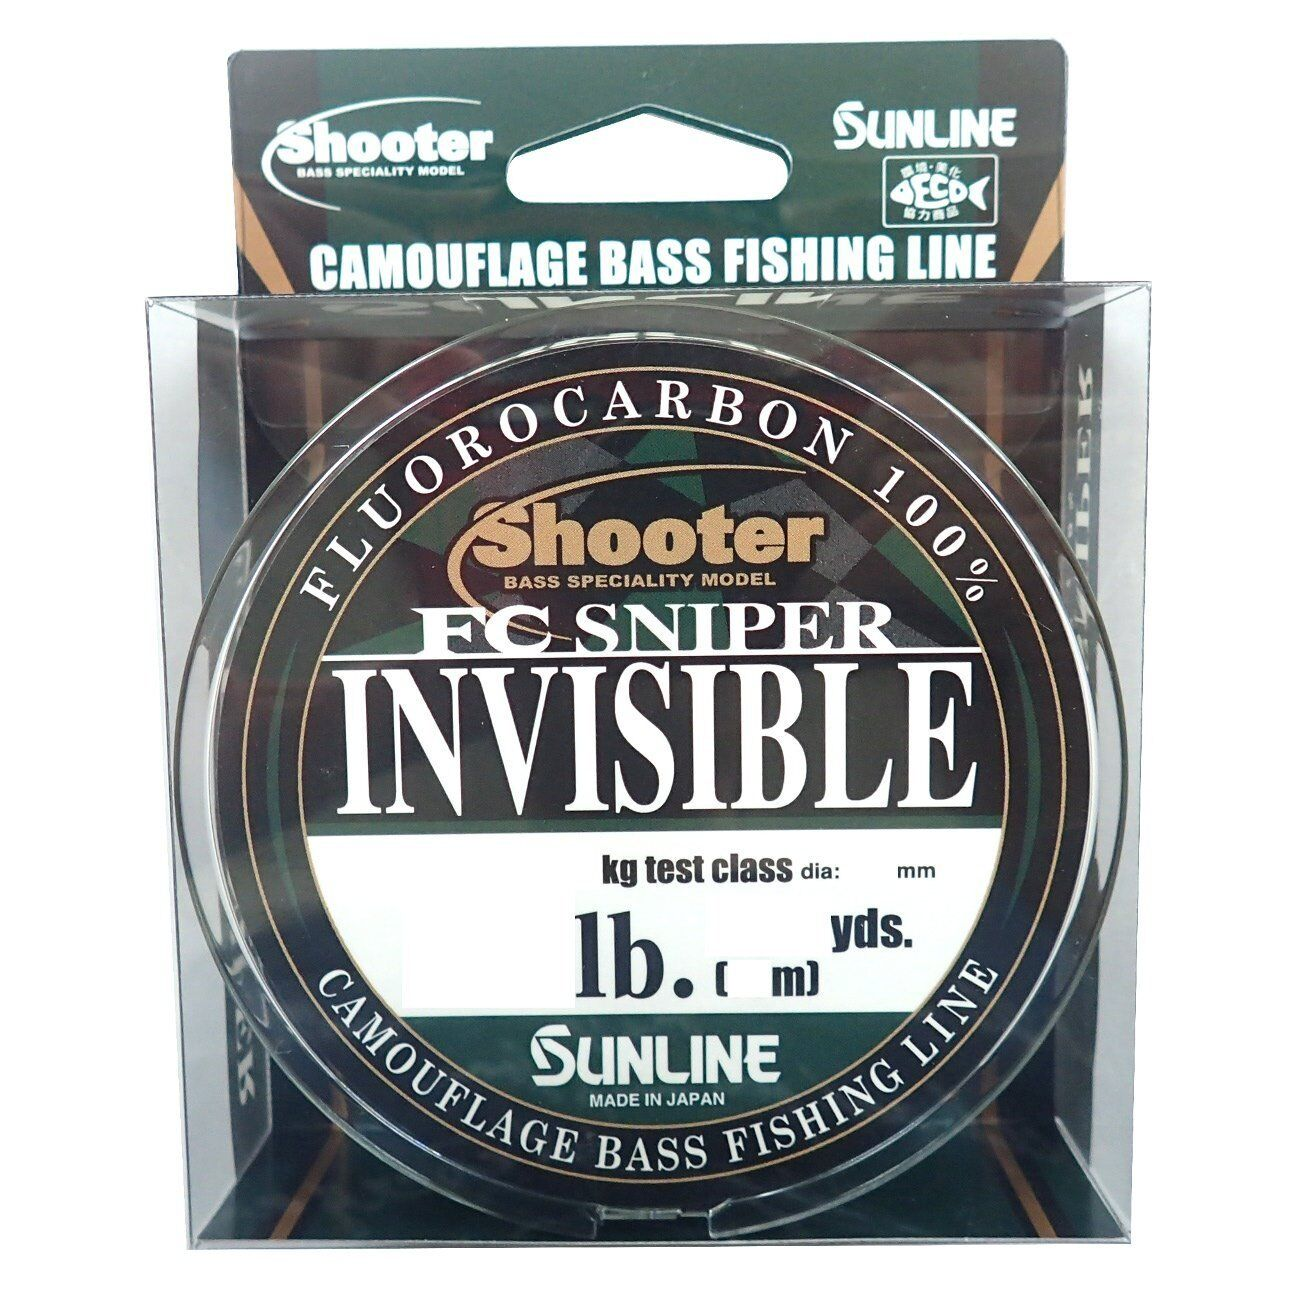 75m Select LB Fluorocarbon Line SUNLINE Shooter FC SNIPER INVISIBLE 82.5yds